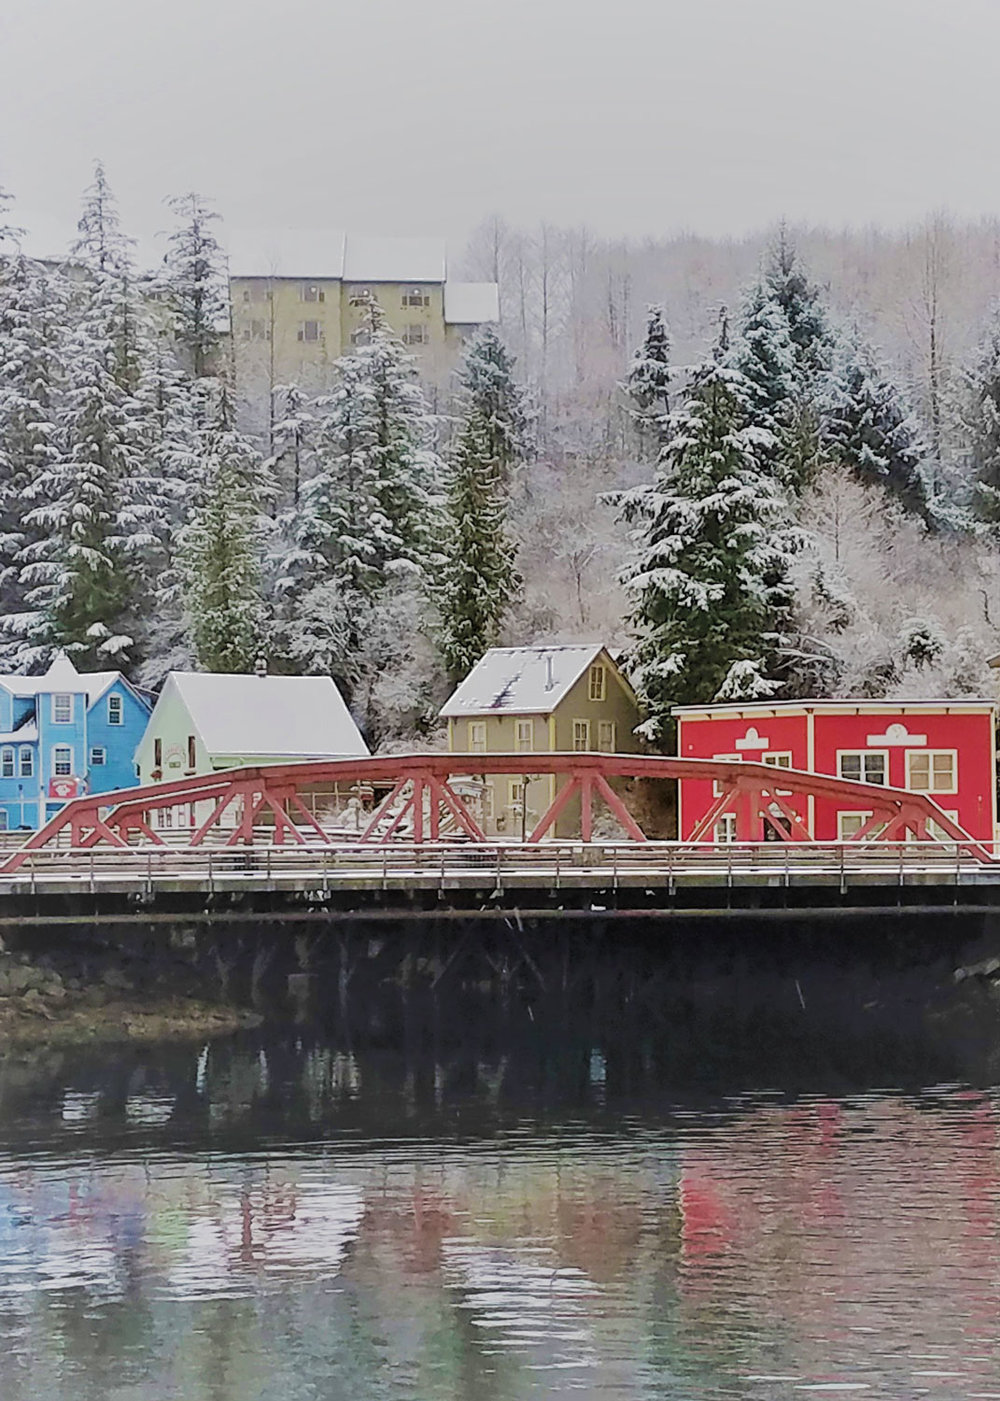 Ketchikan's red bridge and the brightly colored houses of the former red light district.